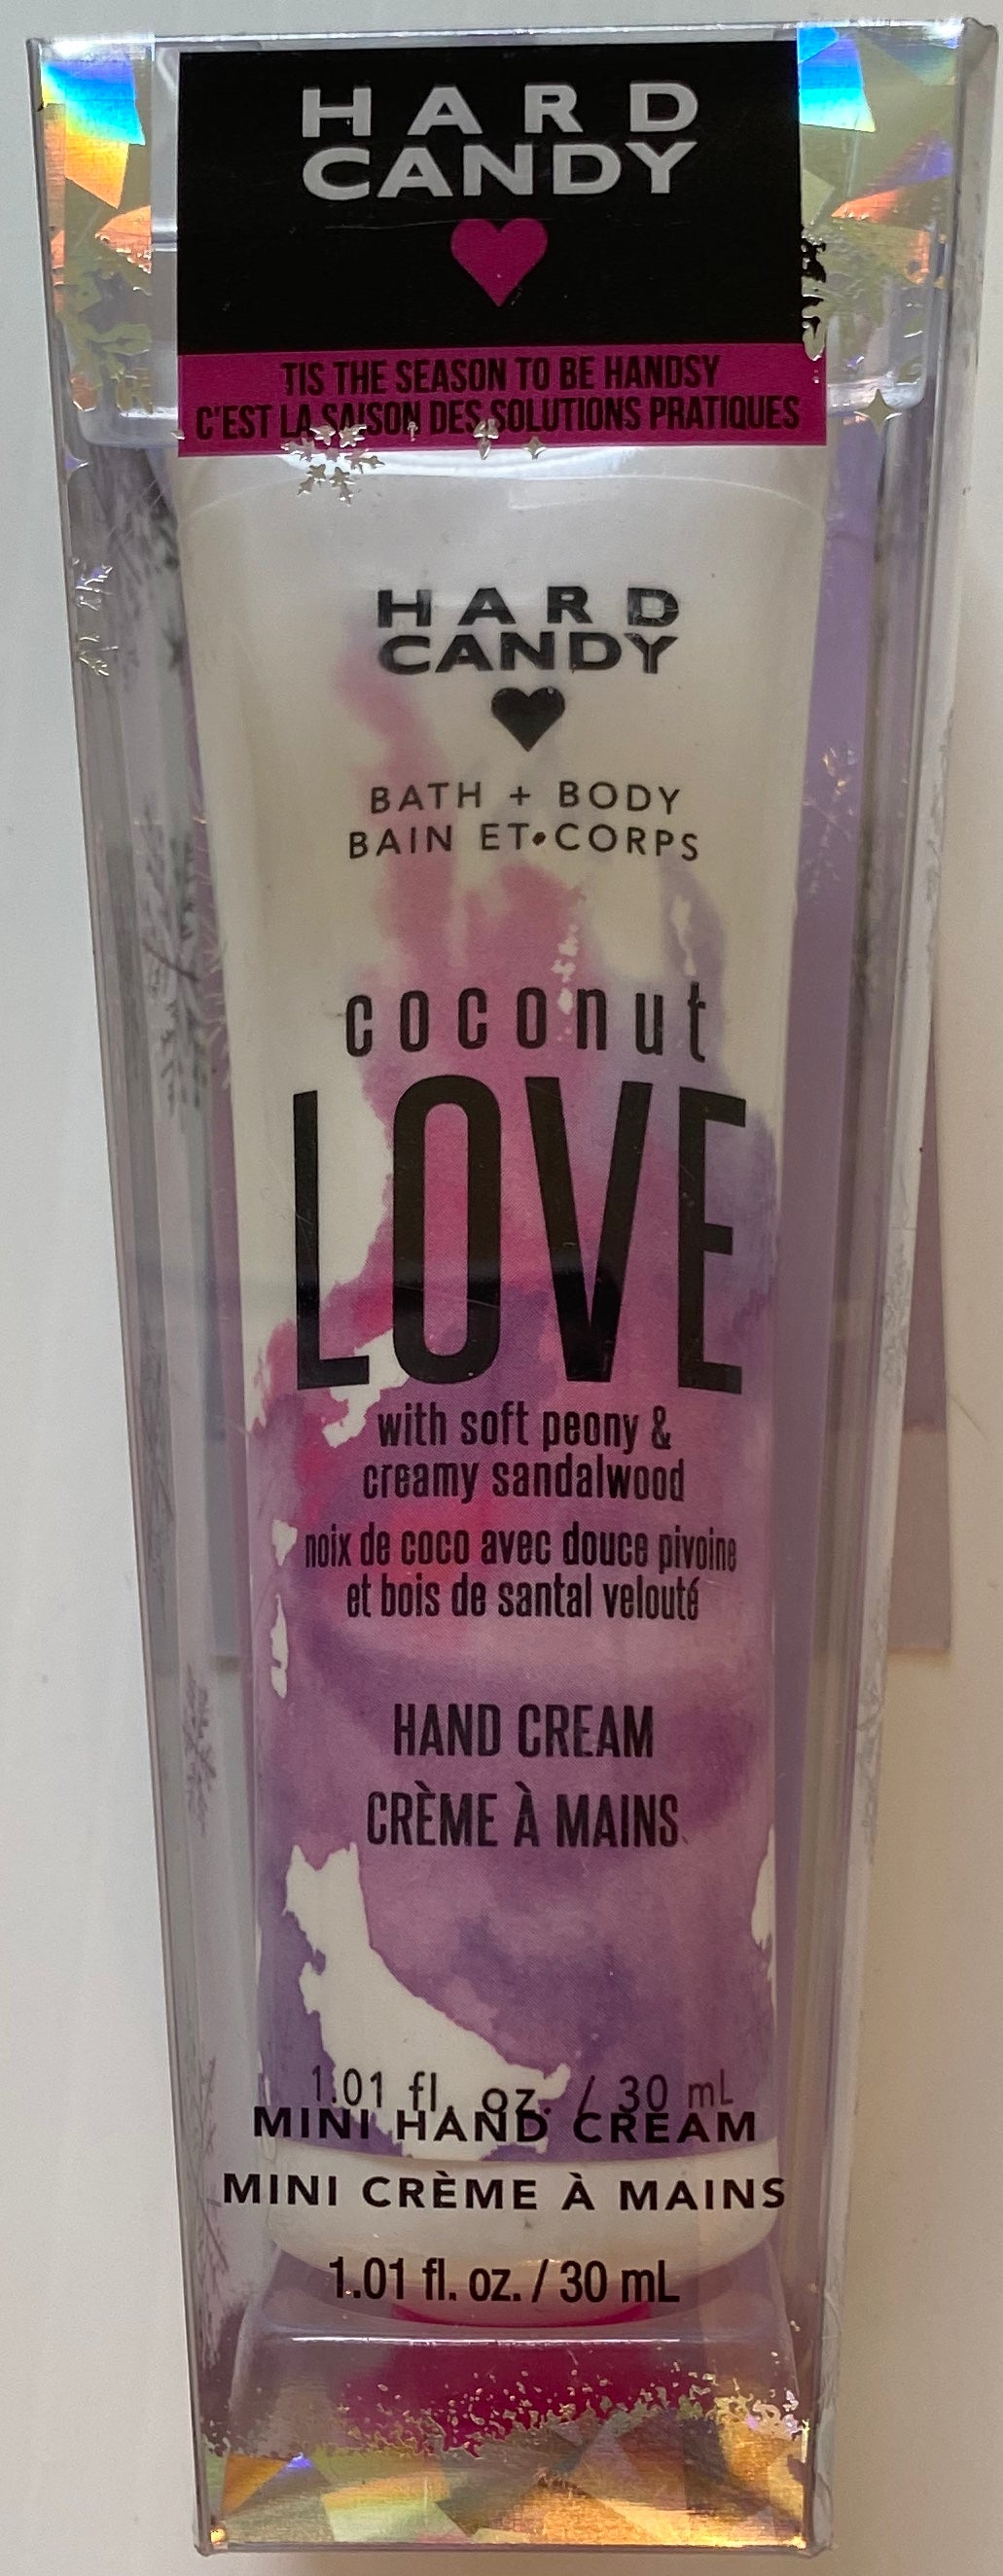 Wholesale - Hard Candy - Tis The Season To Get Handsy - Hand Cream - Coconut Love - 1.01 fl.oz. / 30 mL - 9 Pieces Lot